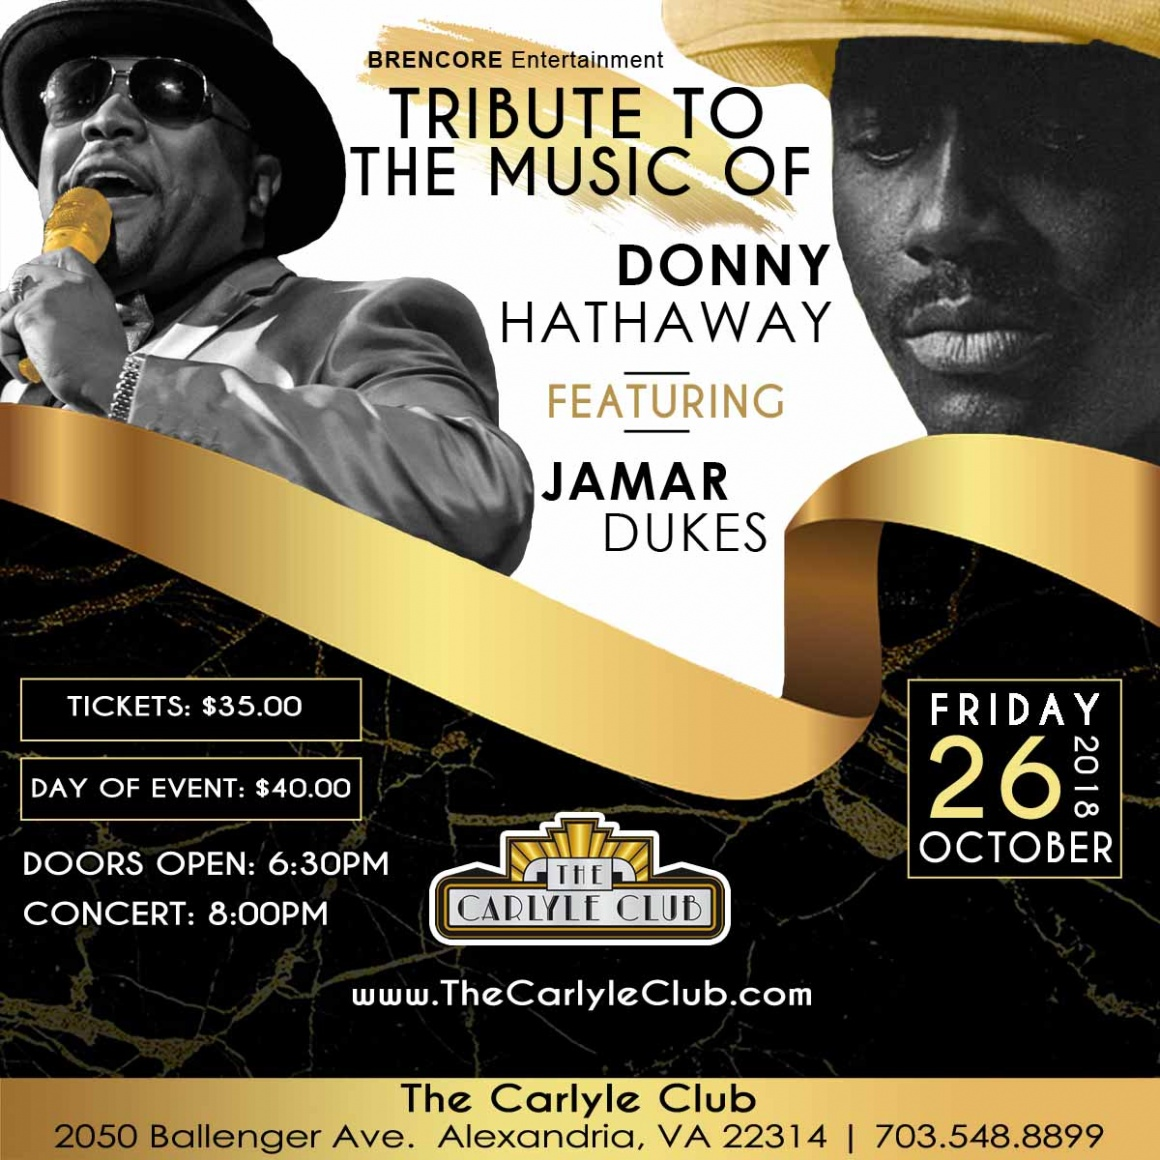 A Tribute to the Music of Donny Hathaway